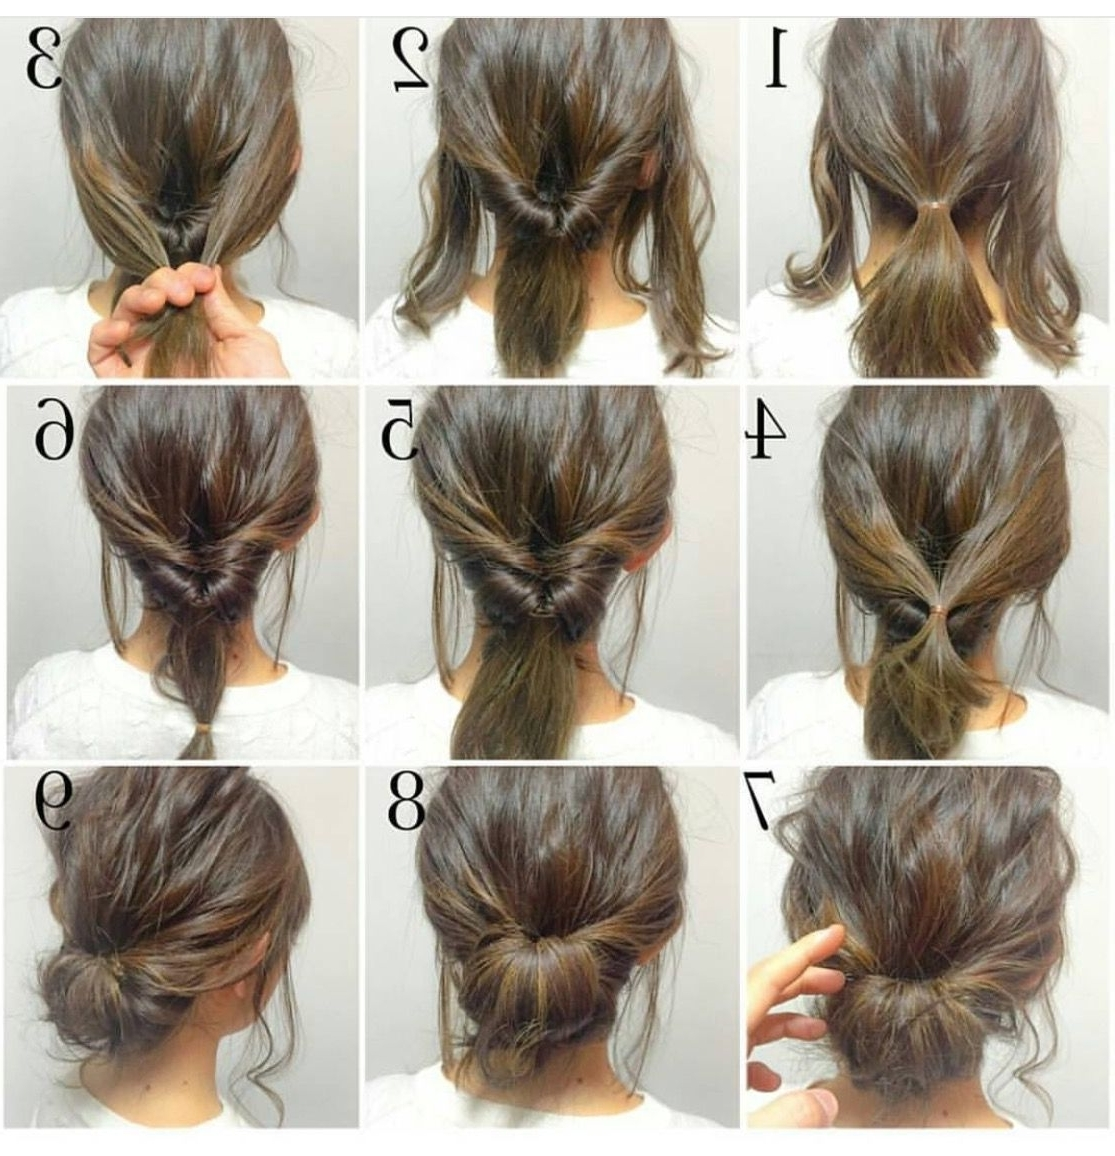 Easy, Hope This Works Out Quick Morning Hair! | • H A I R With Regard To Easy Bun Updo Hairstyles For Medium Hair (View 12 of 15)